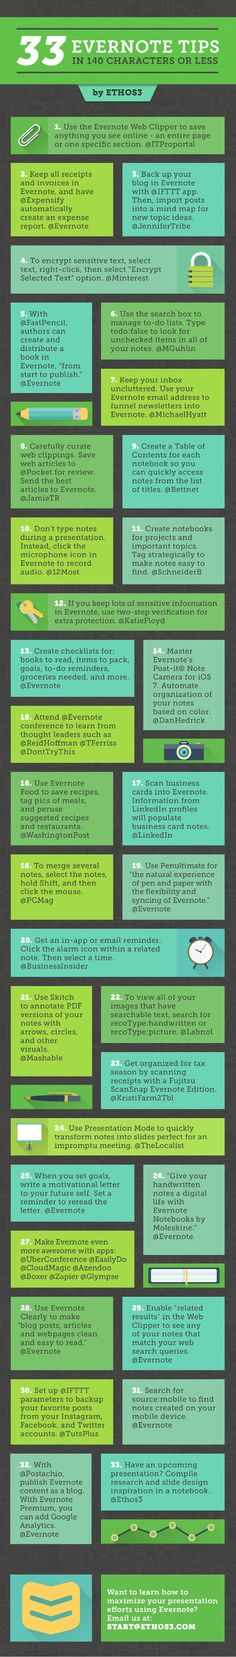 33 Evernote tips in 140 characters or less #infographic